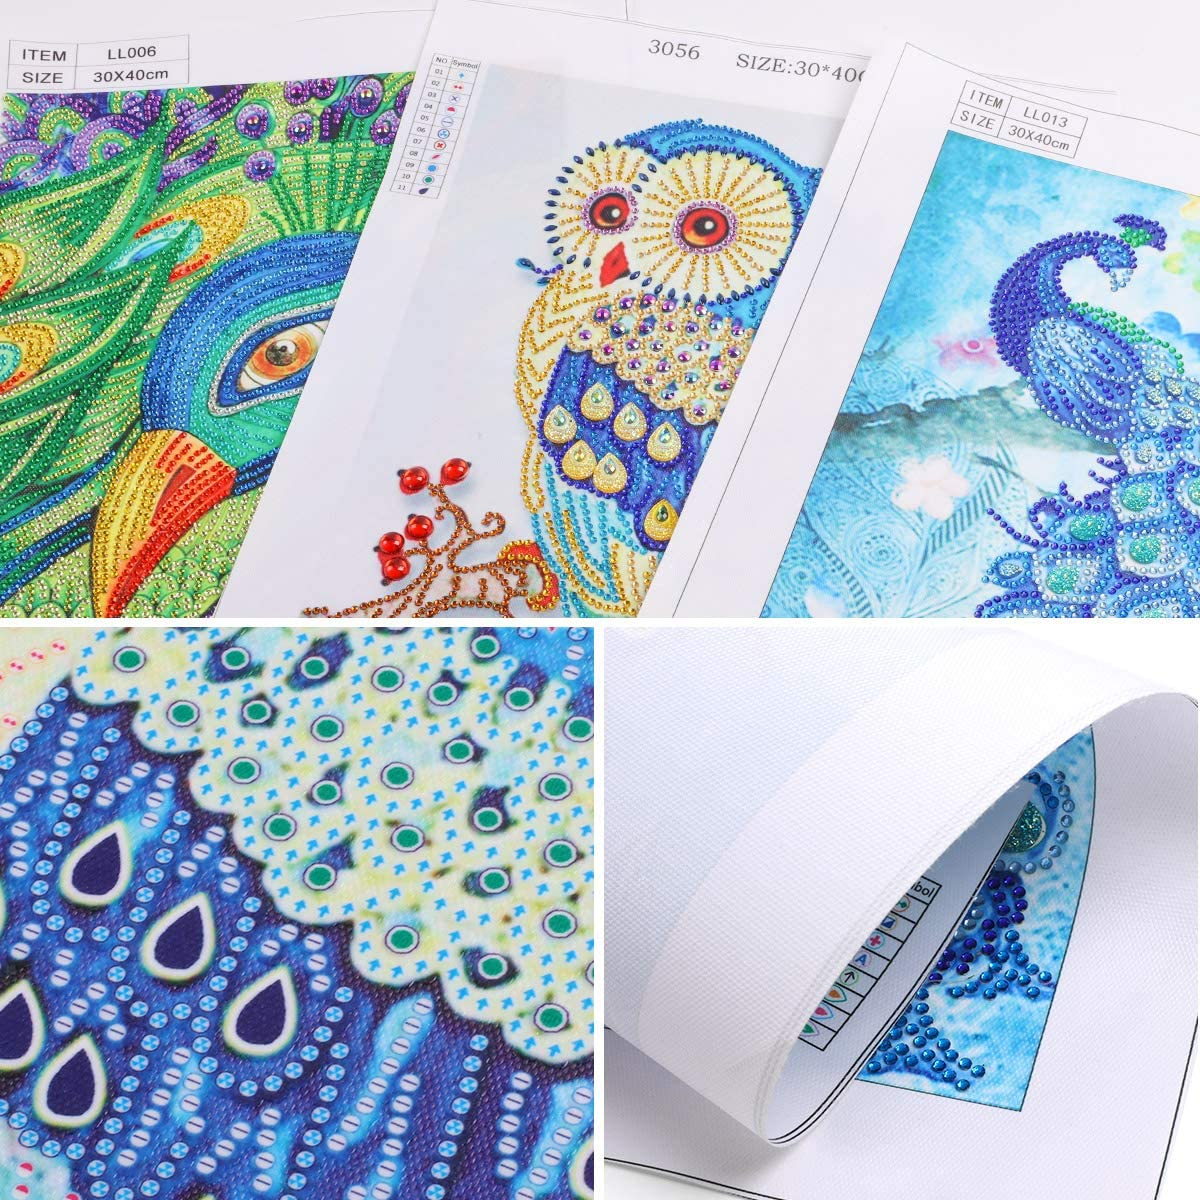 5D Square Full Diamond Painting DIY Kit Rhinestone Drill Picture Art Craft for Home Wall Decor 12x16Inch Butterfly Skull